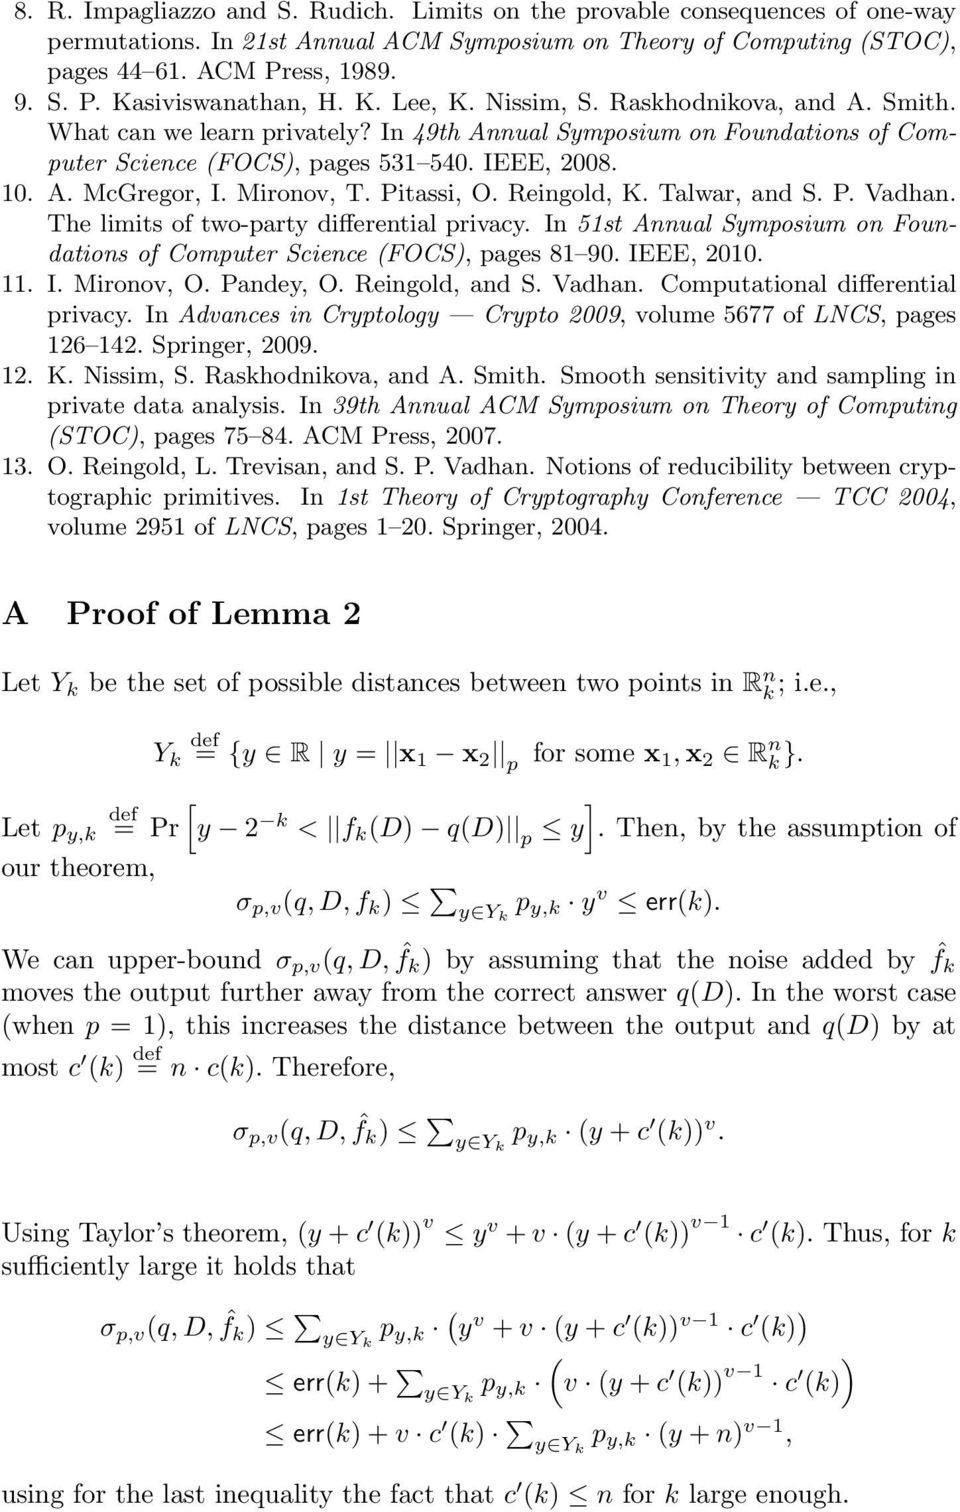 Mironov, T. Pitassi, O. Reingold, K. Talwar, and S. P. Vadhan. The limits of two-party differential privacy. In 51st Annual Symposium on Foundations of Computer Science (FOCS), pages 81 90.